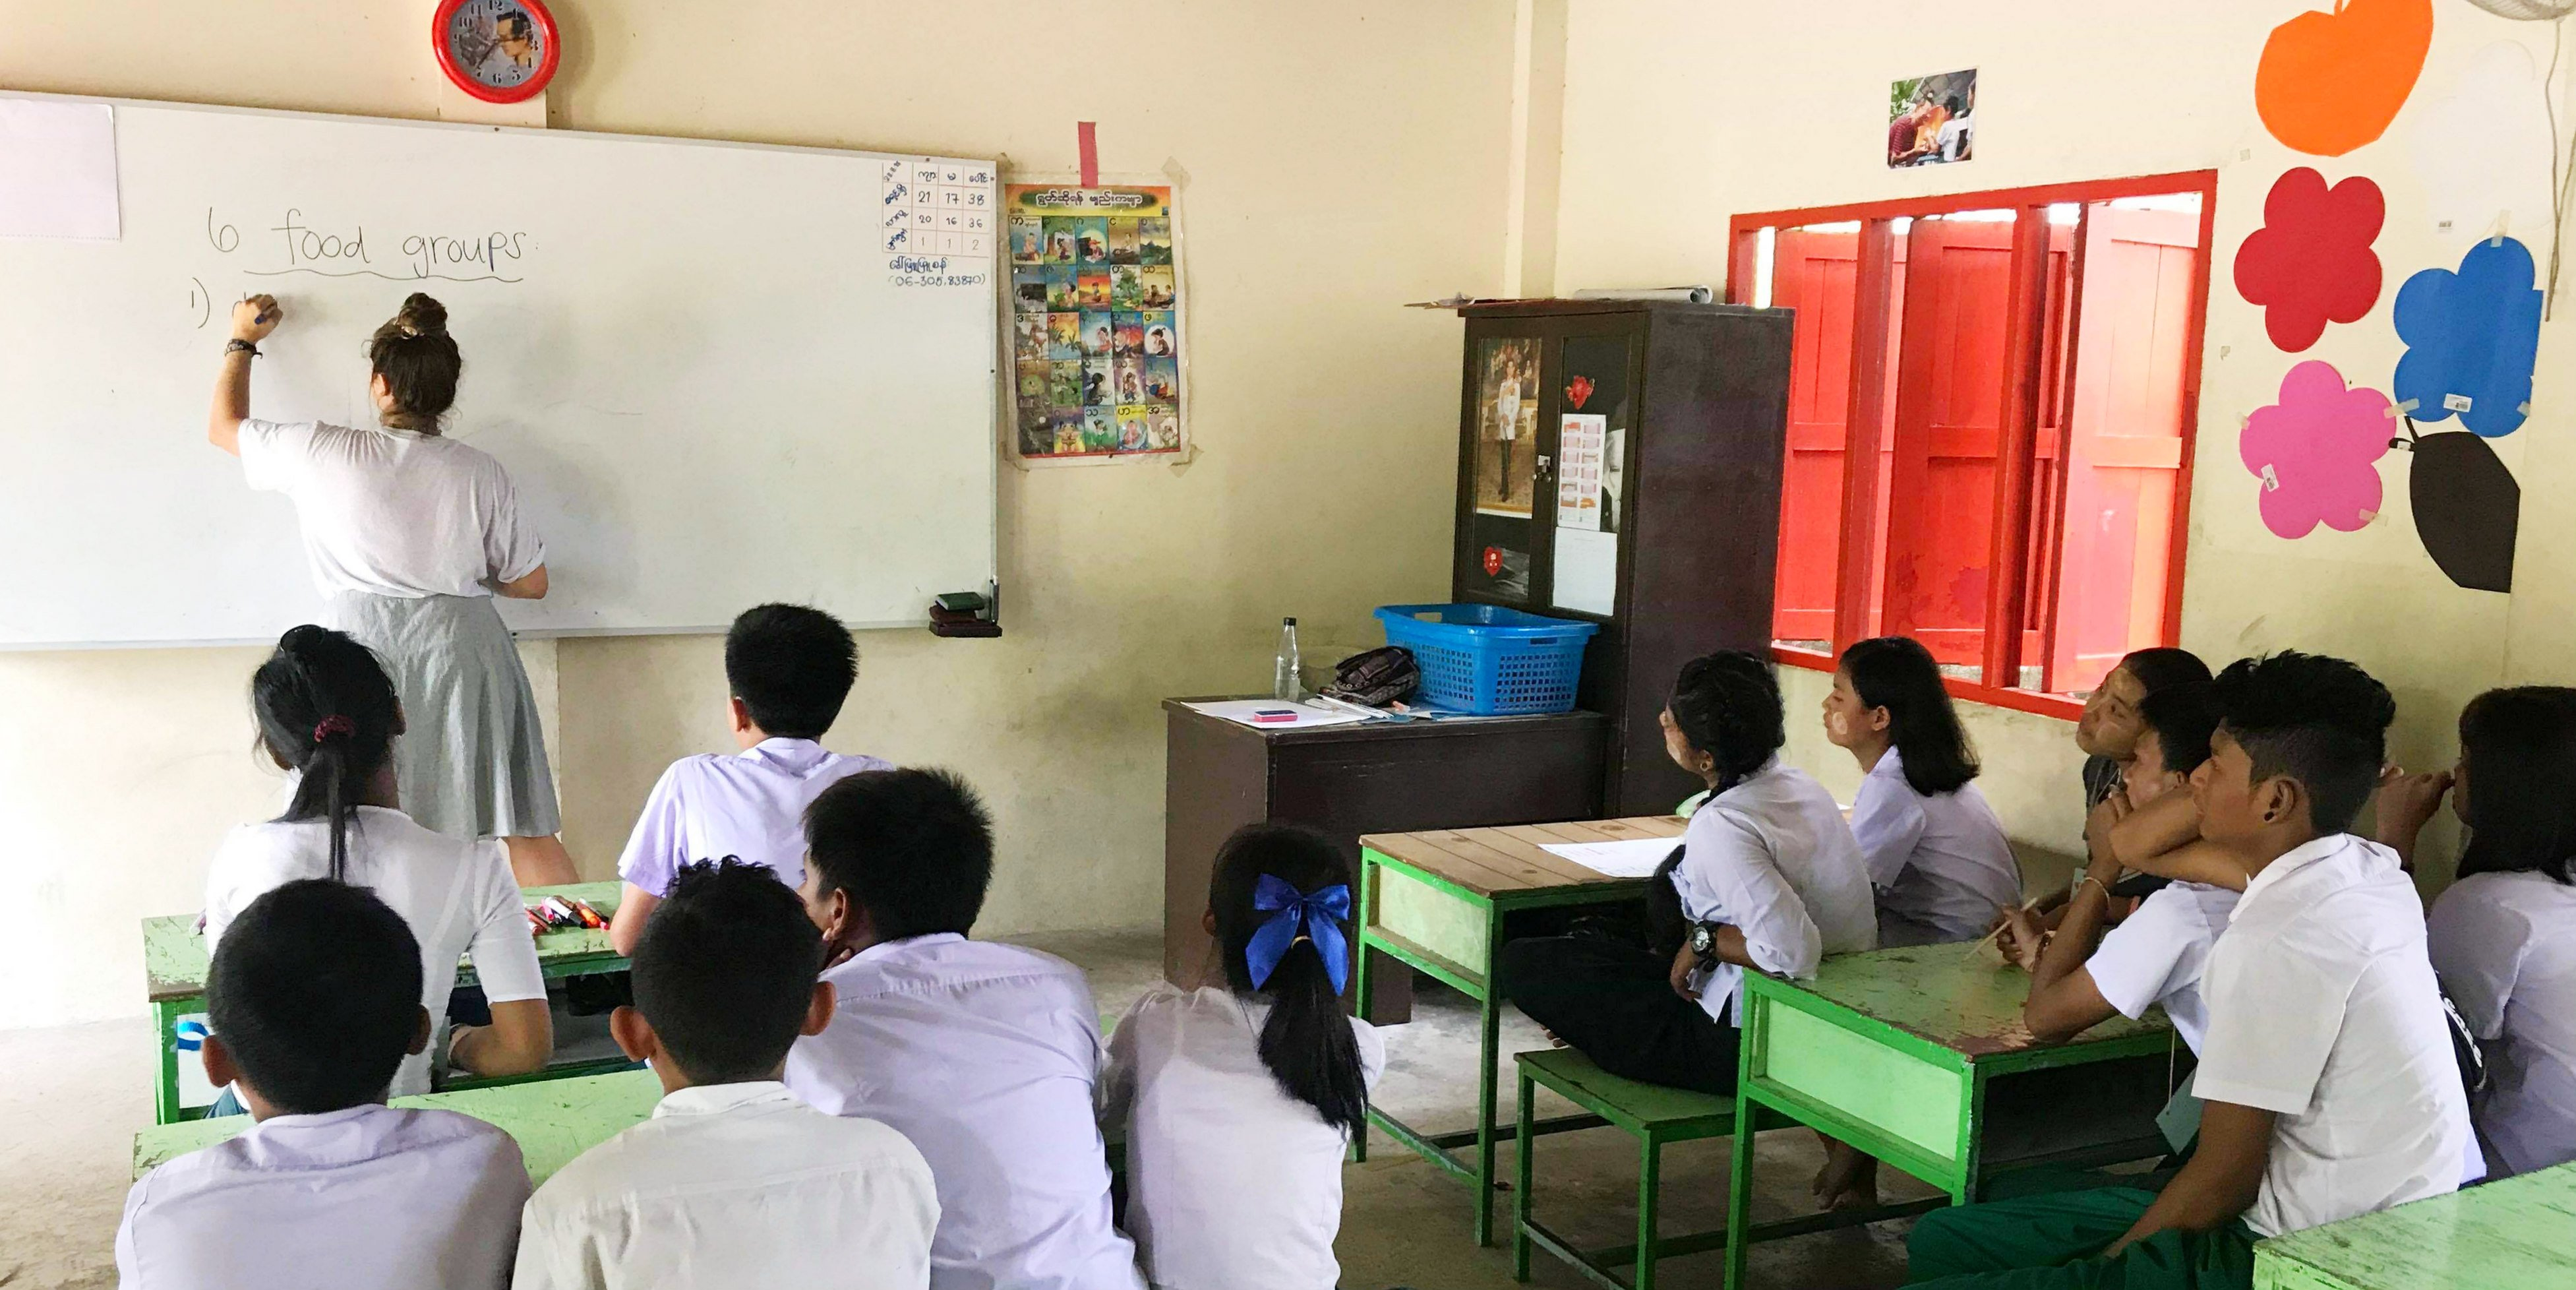 A TEFL trained teacher leads a lesson on food groups in Thailand.